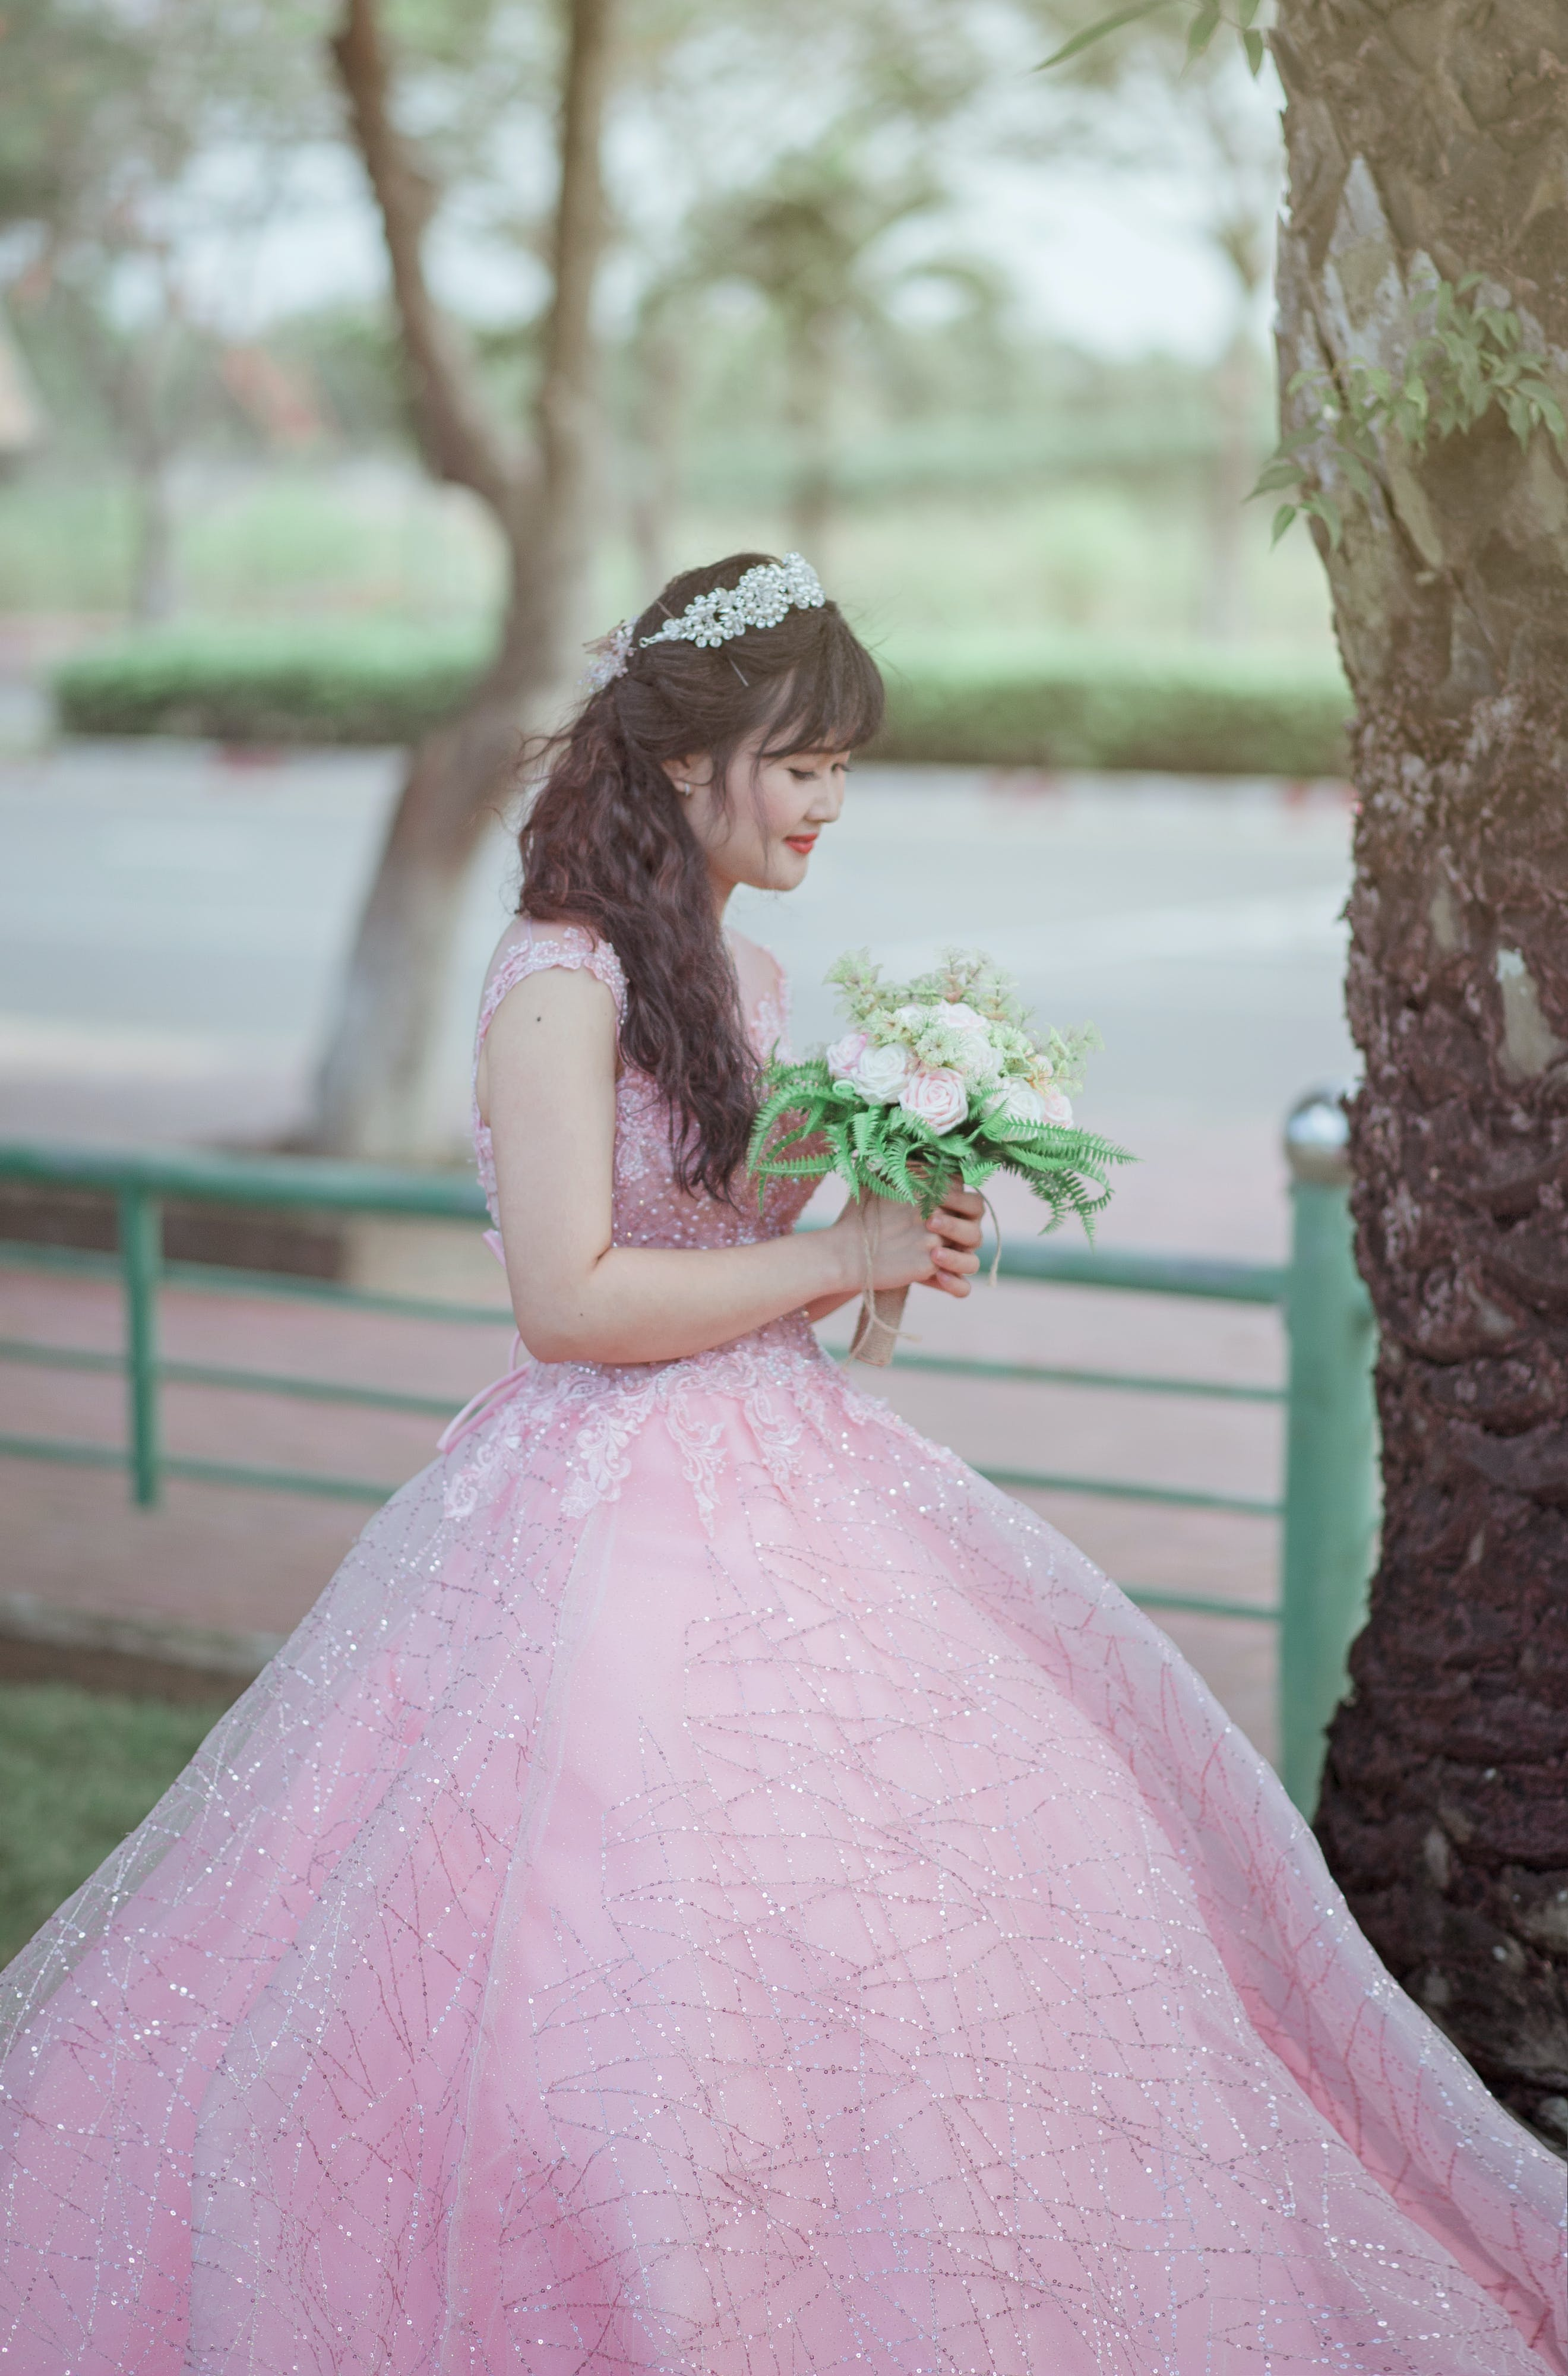 Woman in Pink Sleeveless Gown